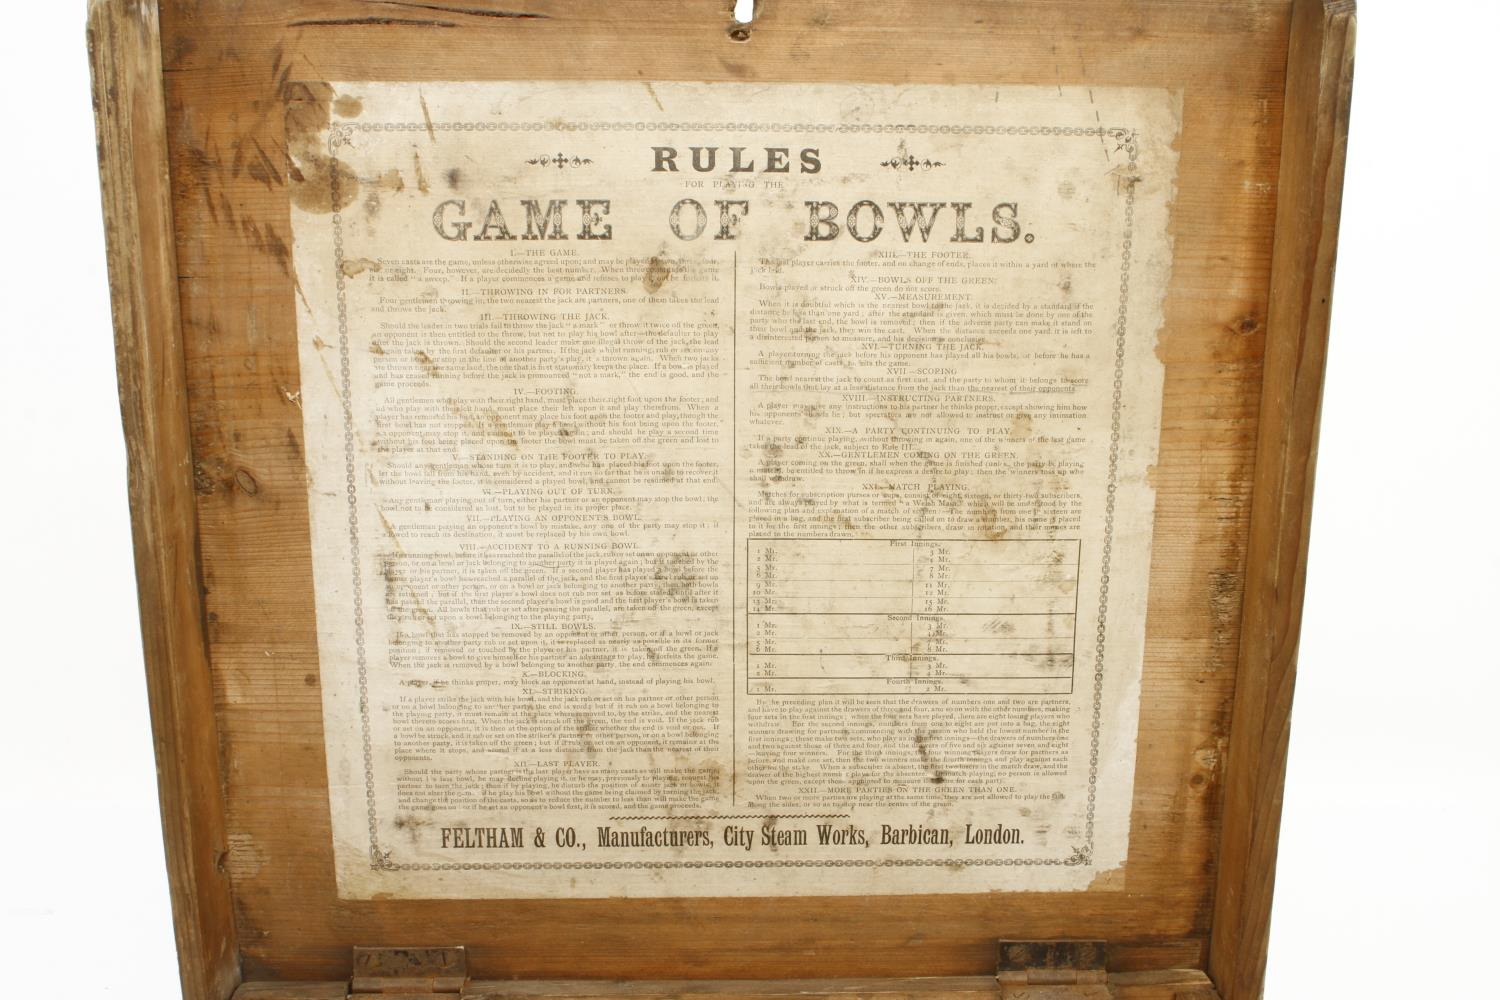 Two sets of lawn bowls in pine box with orig rules the makers label with FELTHAM & Co inside the lid - Image 2 of 3